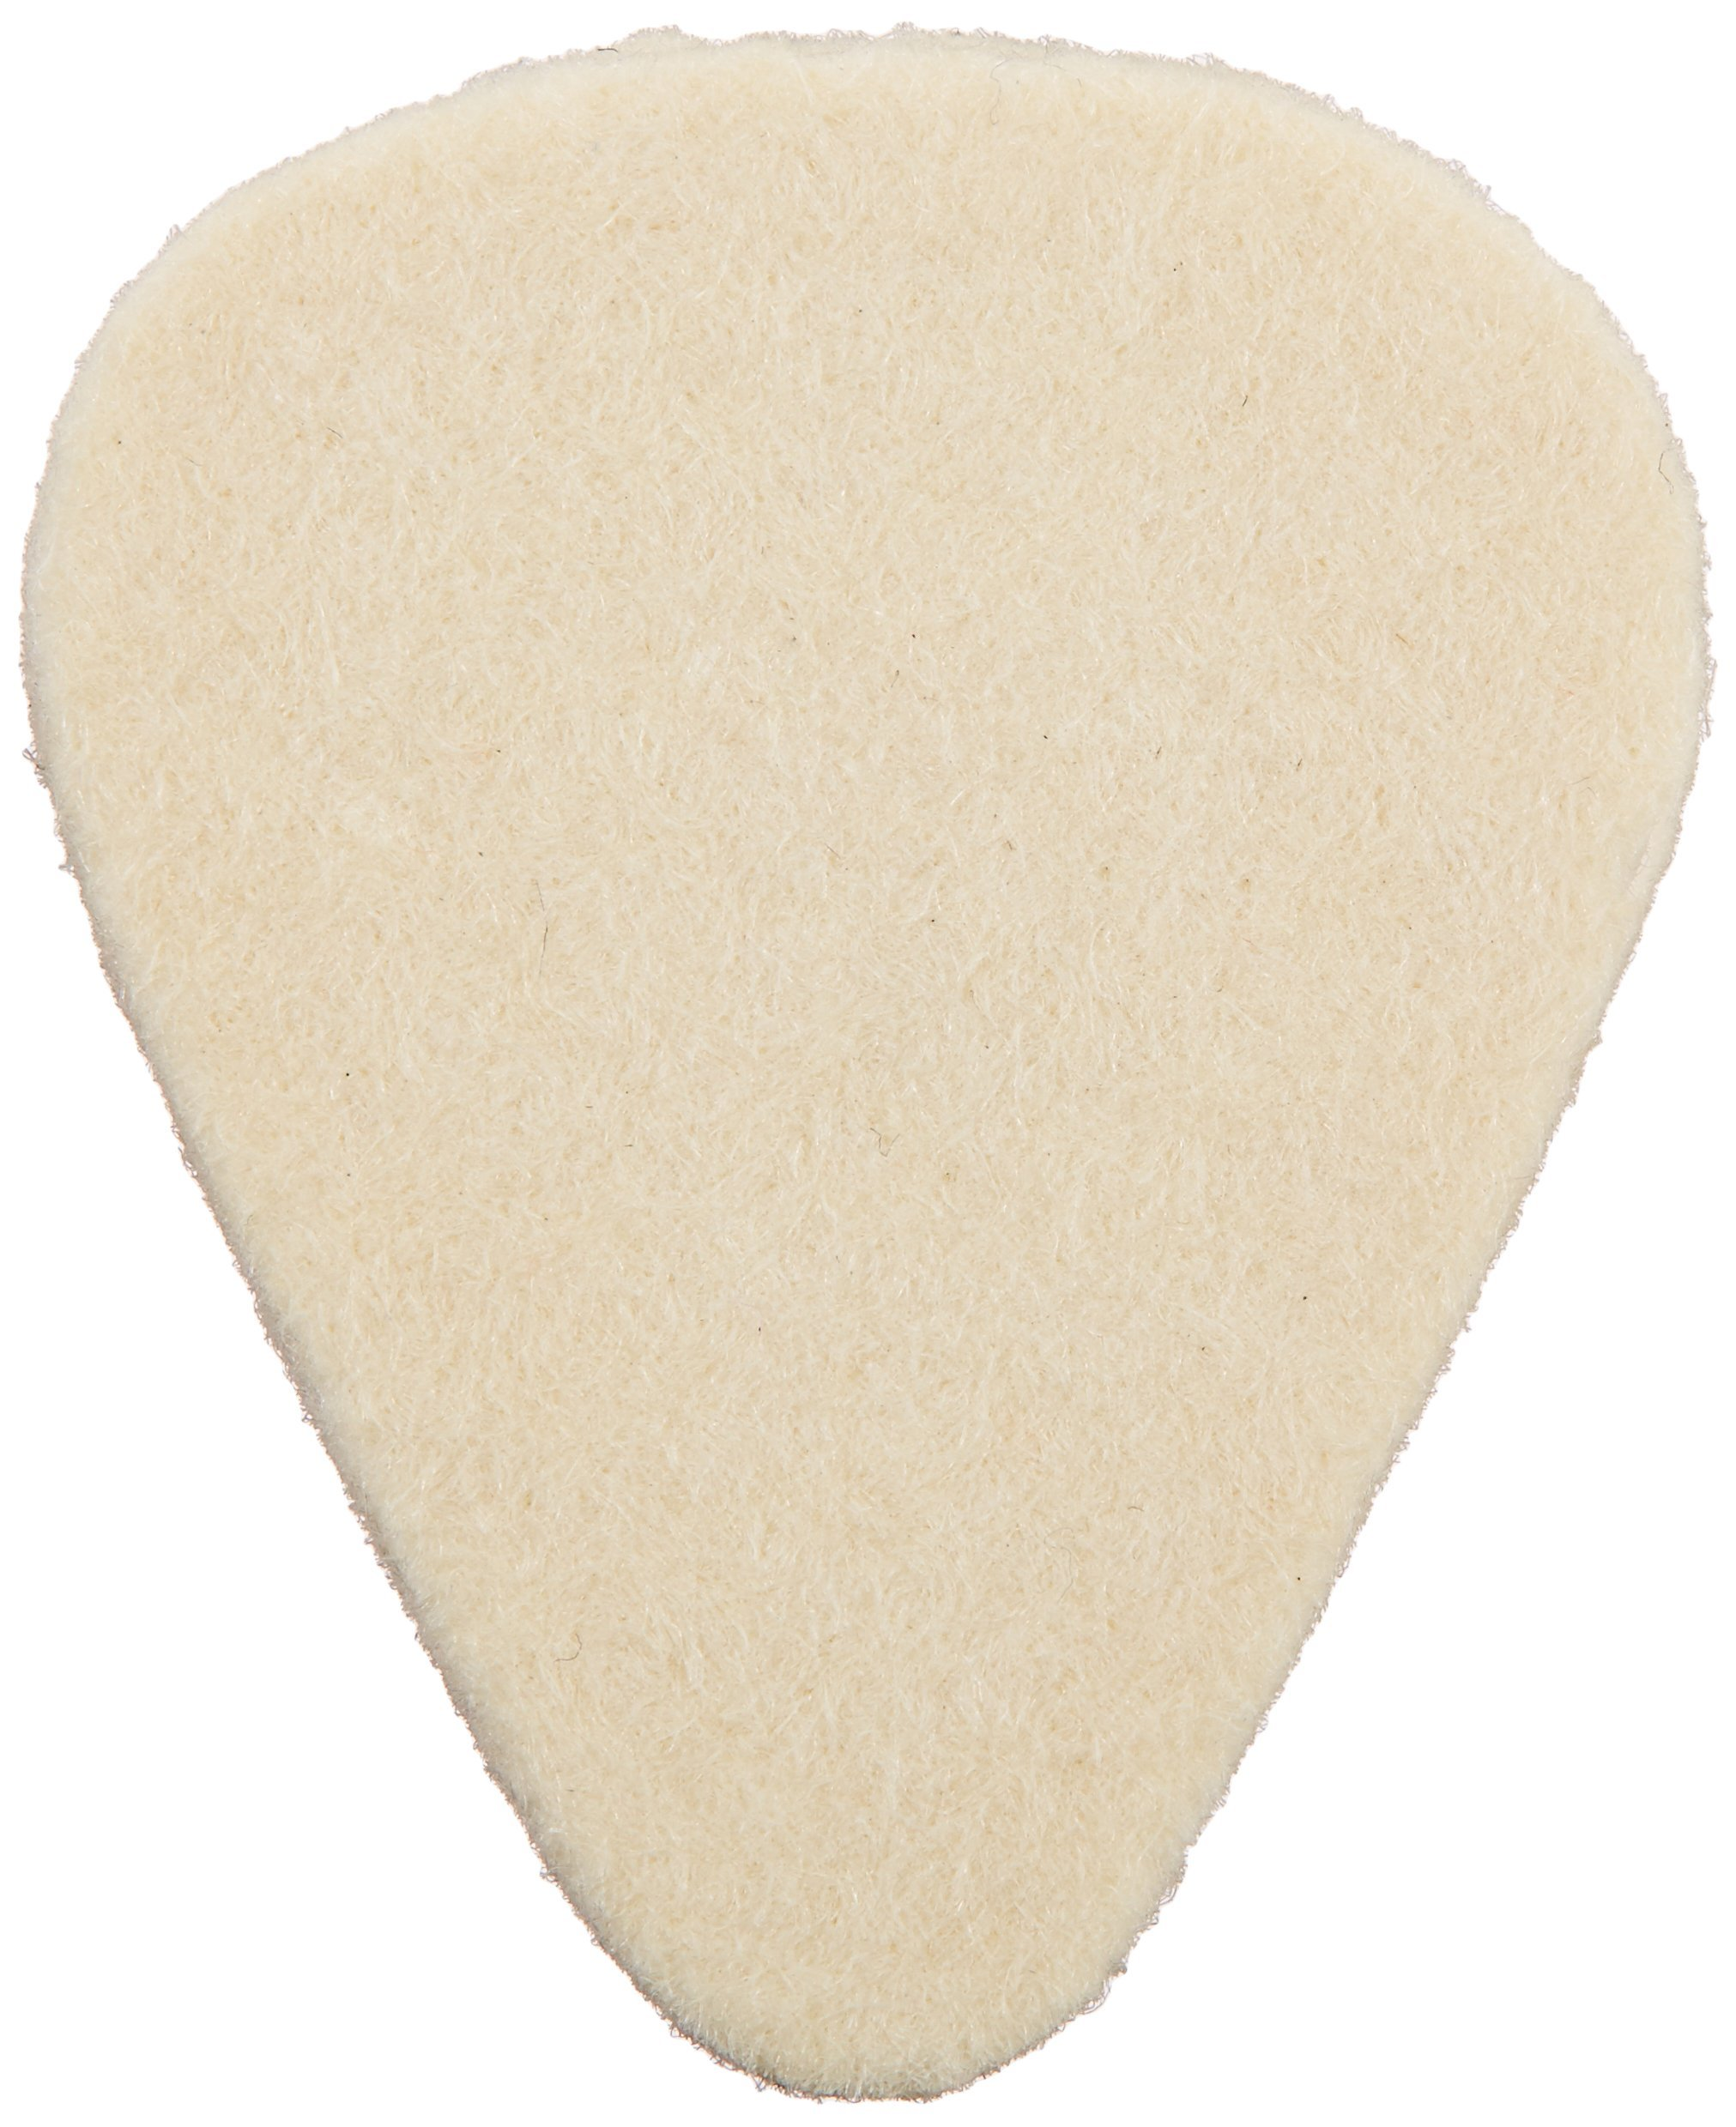 Dunlop 8011 Felt Picks Nick Lucas, Natural, 3.2mm, 12/Bag